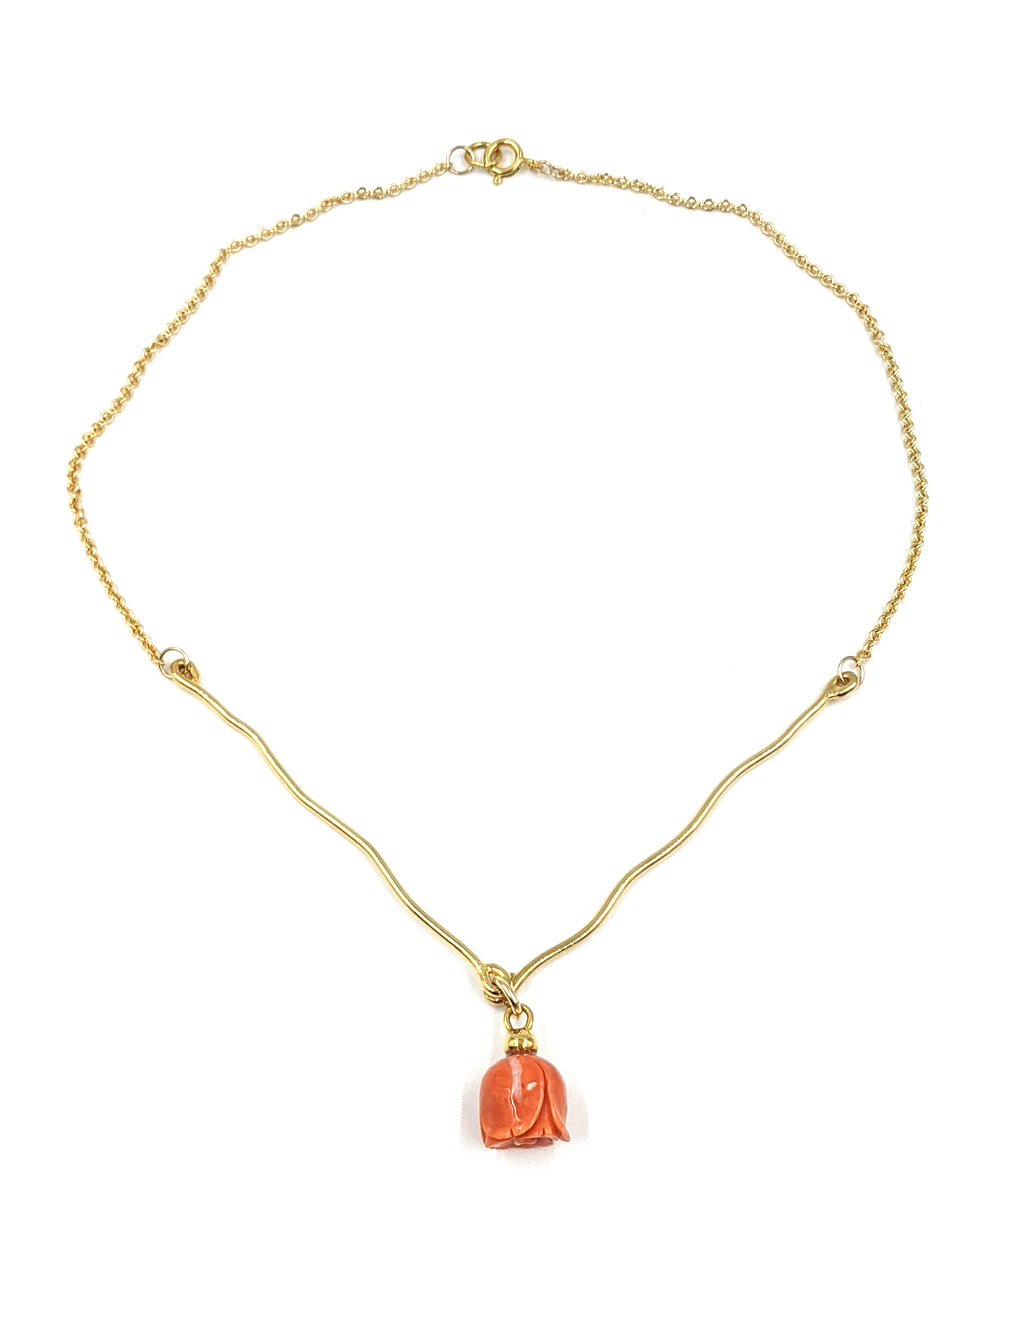 The V Coral Necklace